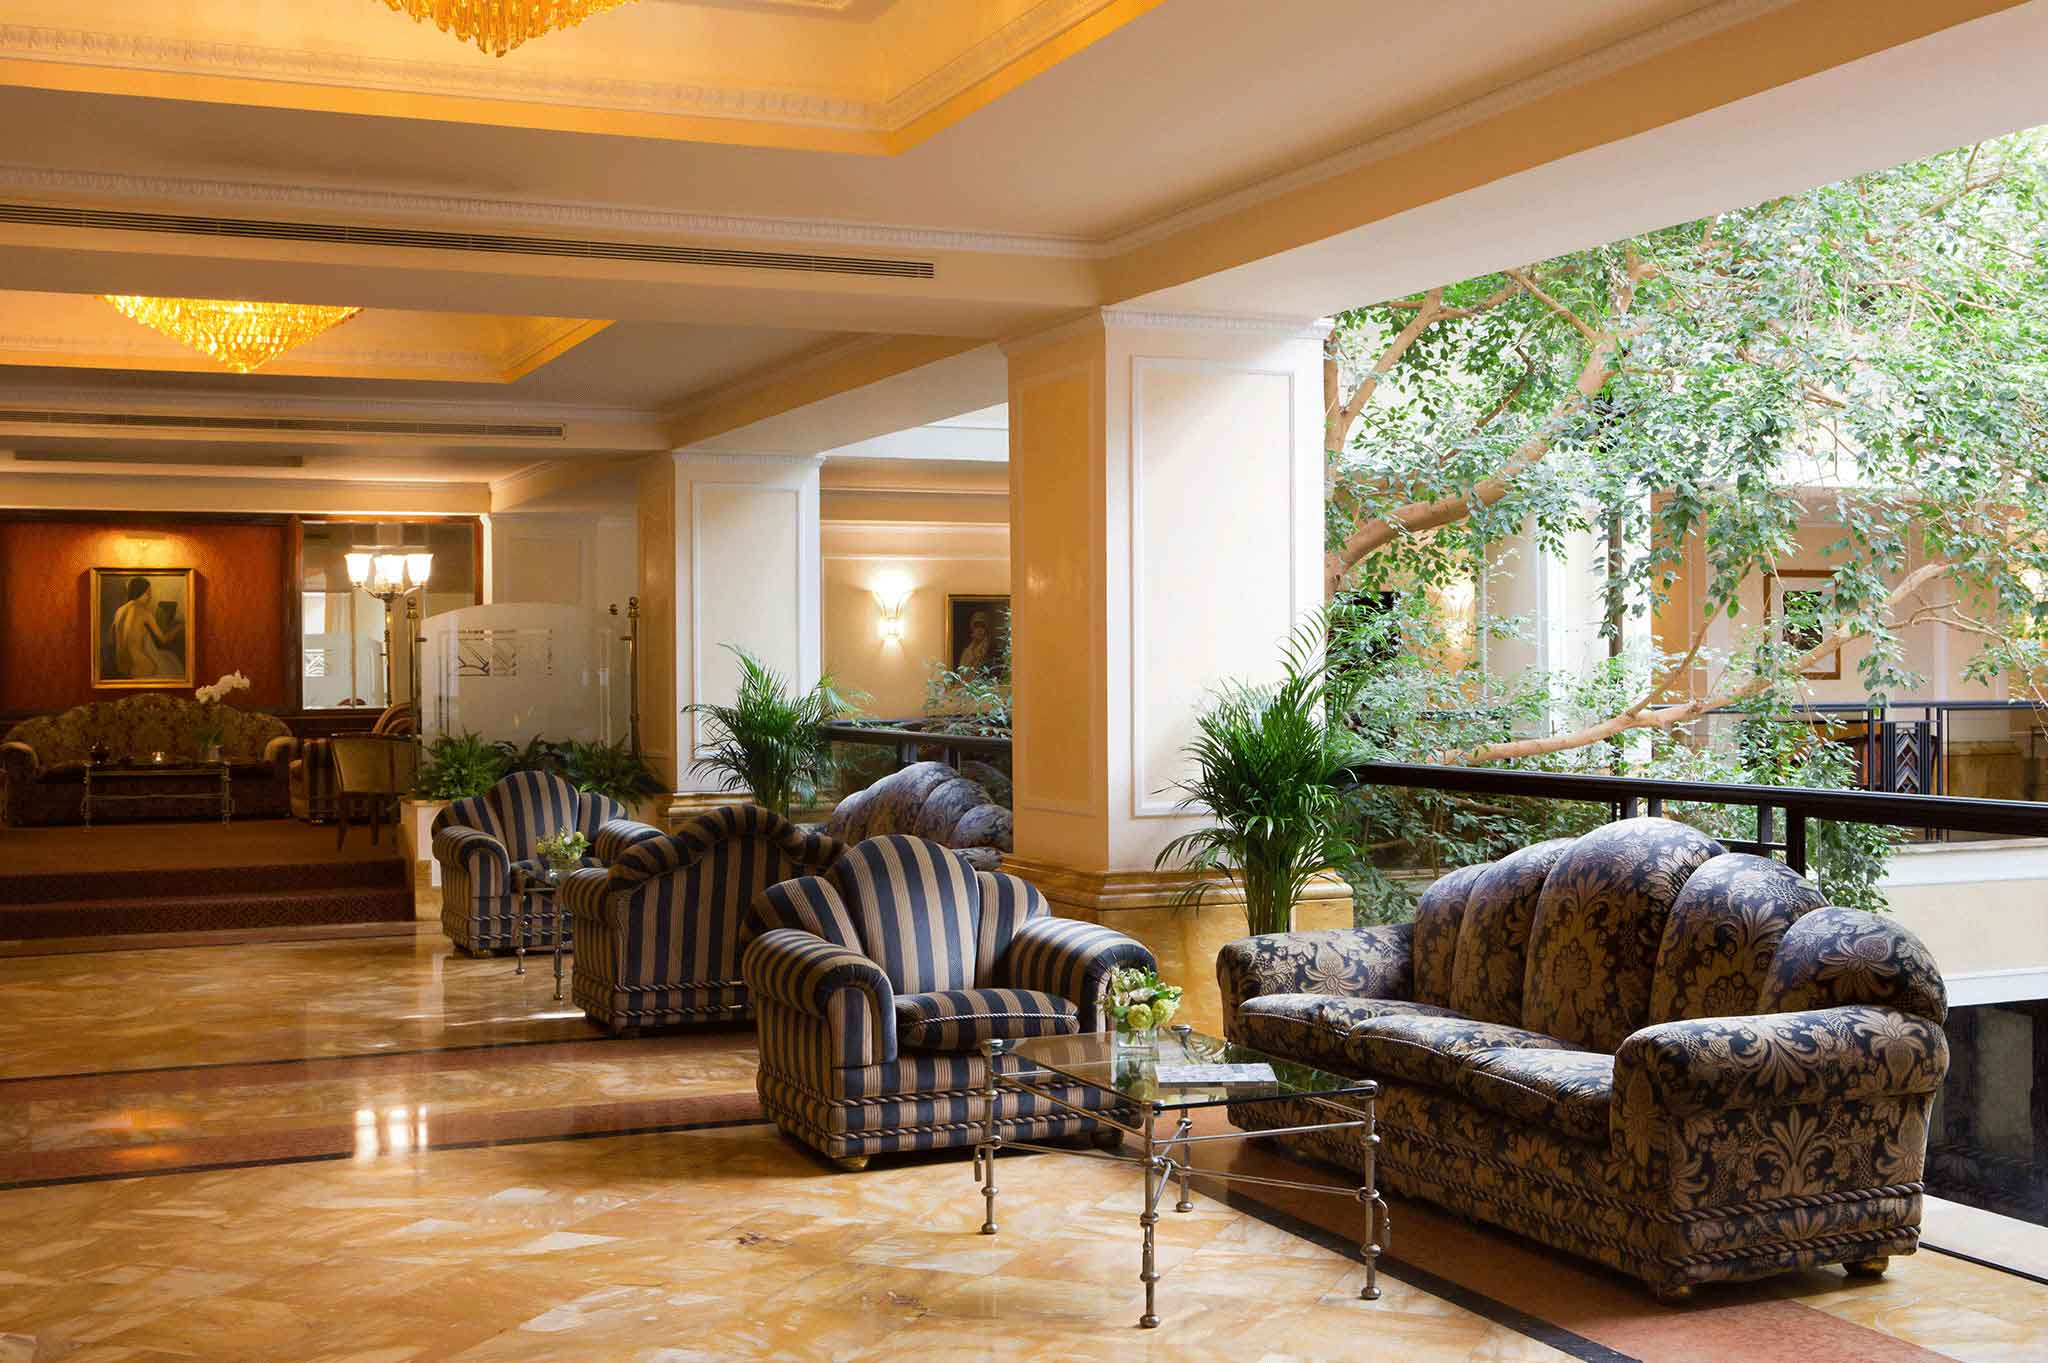 Starhotels Du Parc 4 Star Hotel In Parma Italy Near Parco Ducale